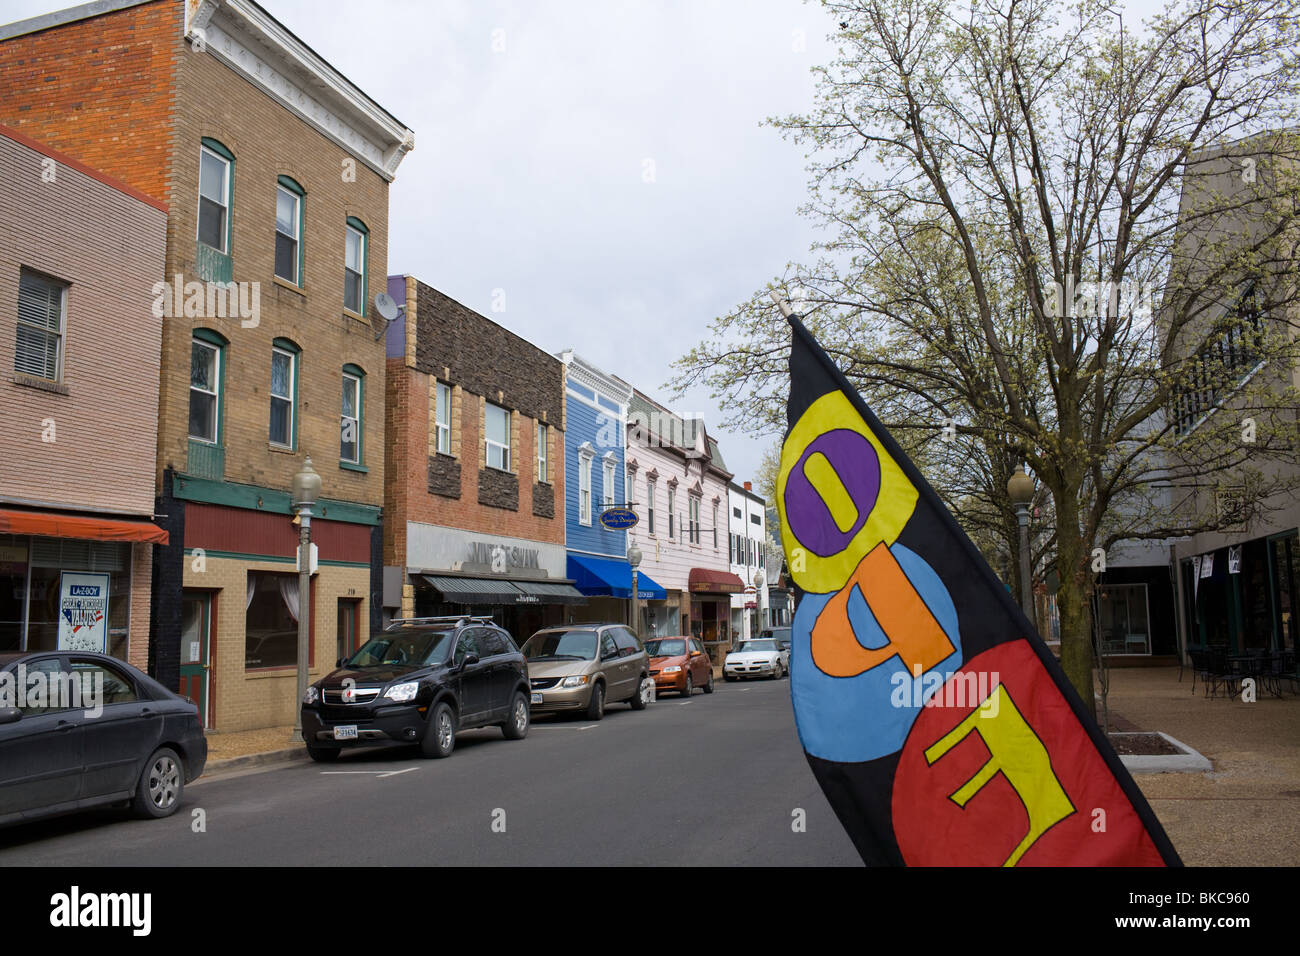 Business district of Front Royal, Virginia, gateway to Blue Ridge Mountains and Shenandoah Valley - Stock Image